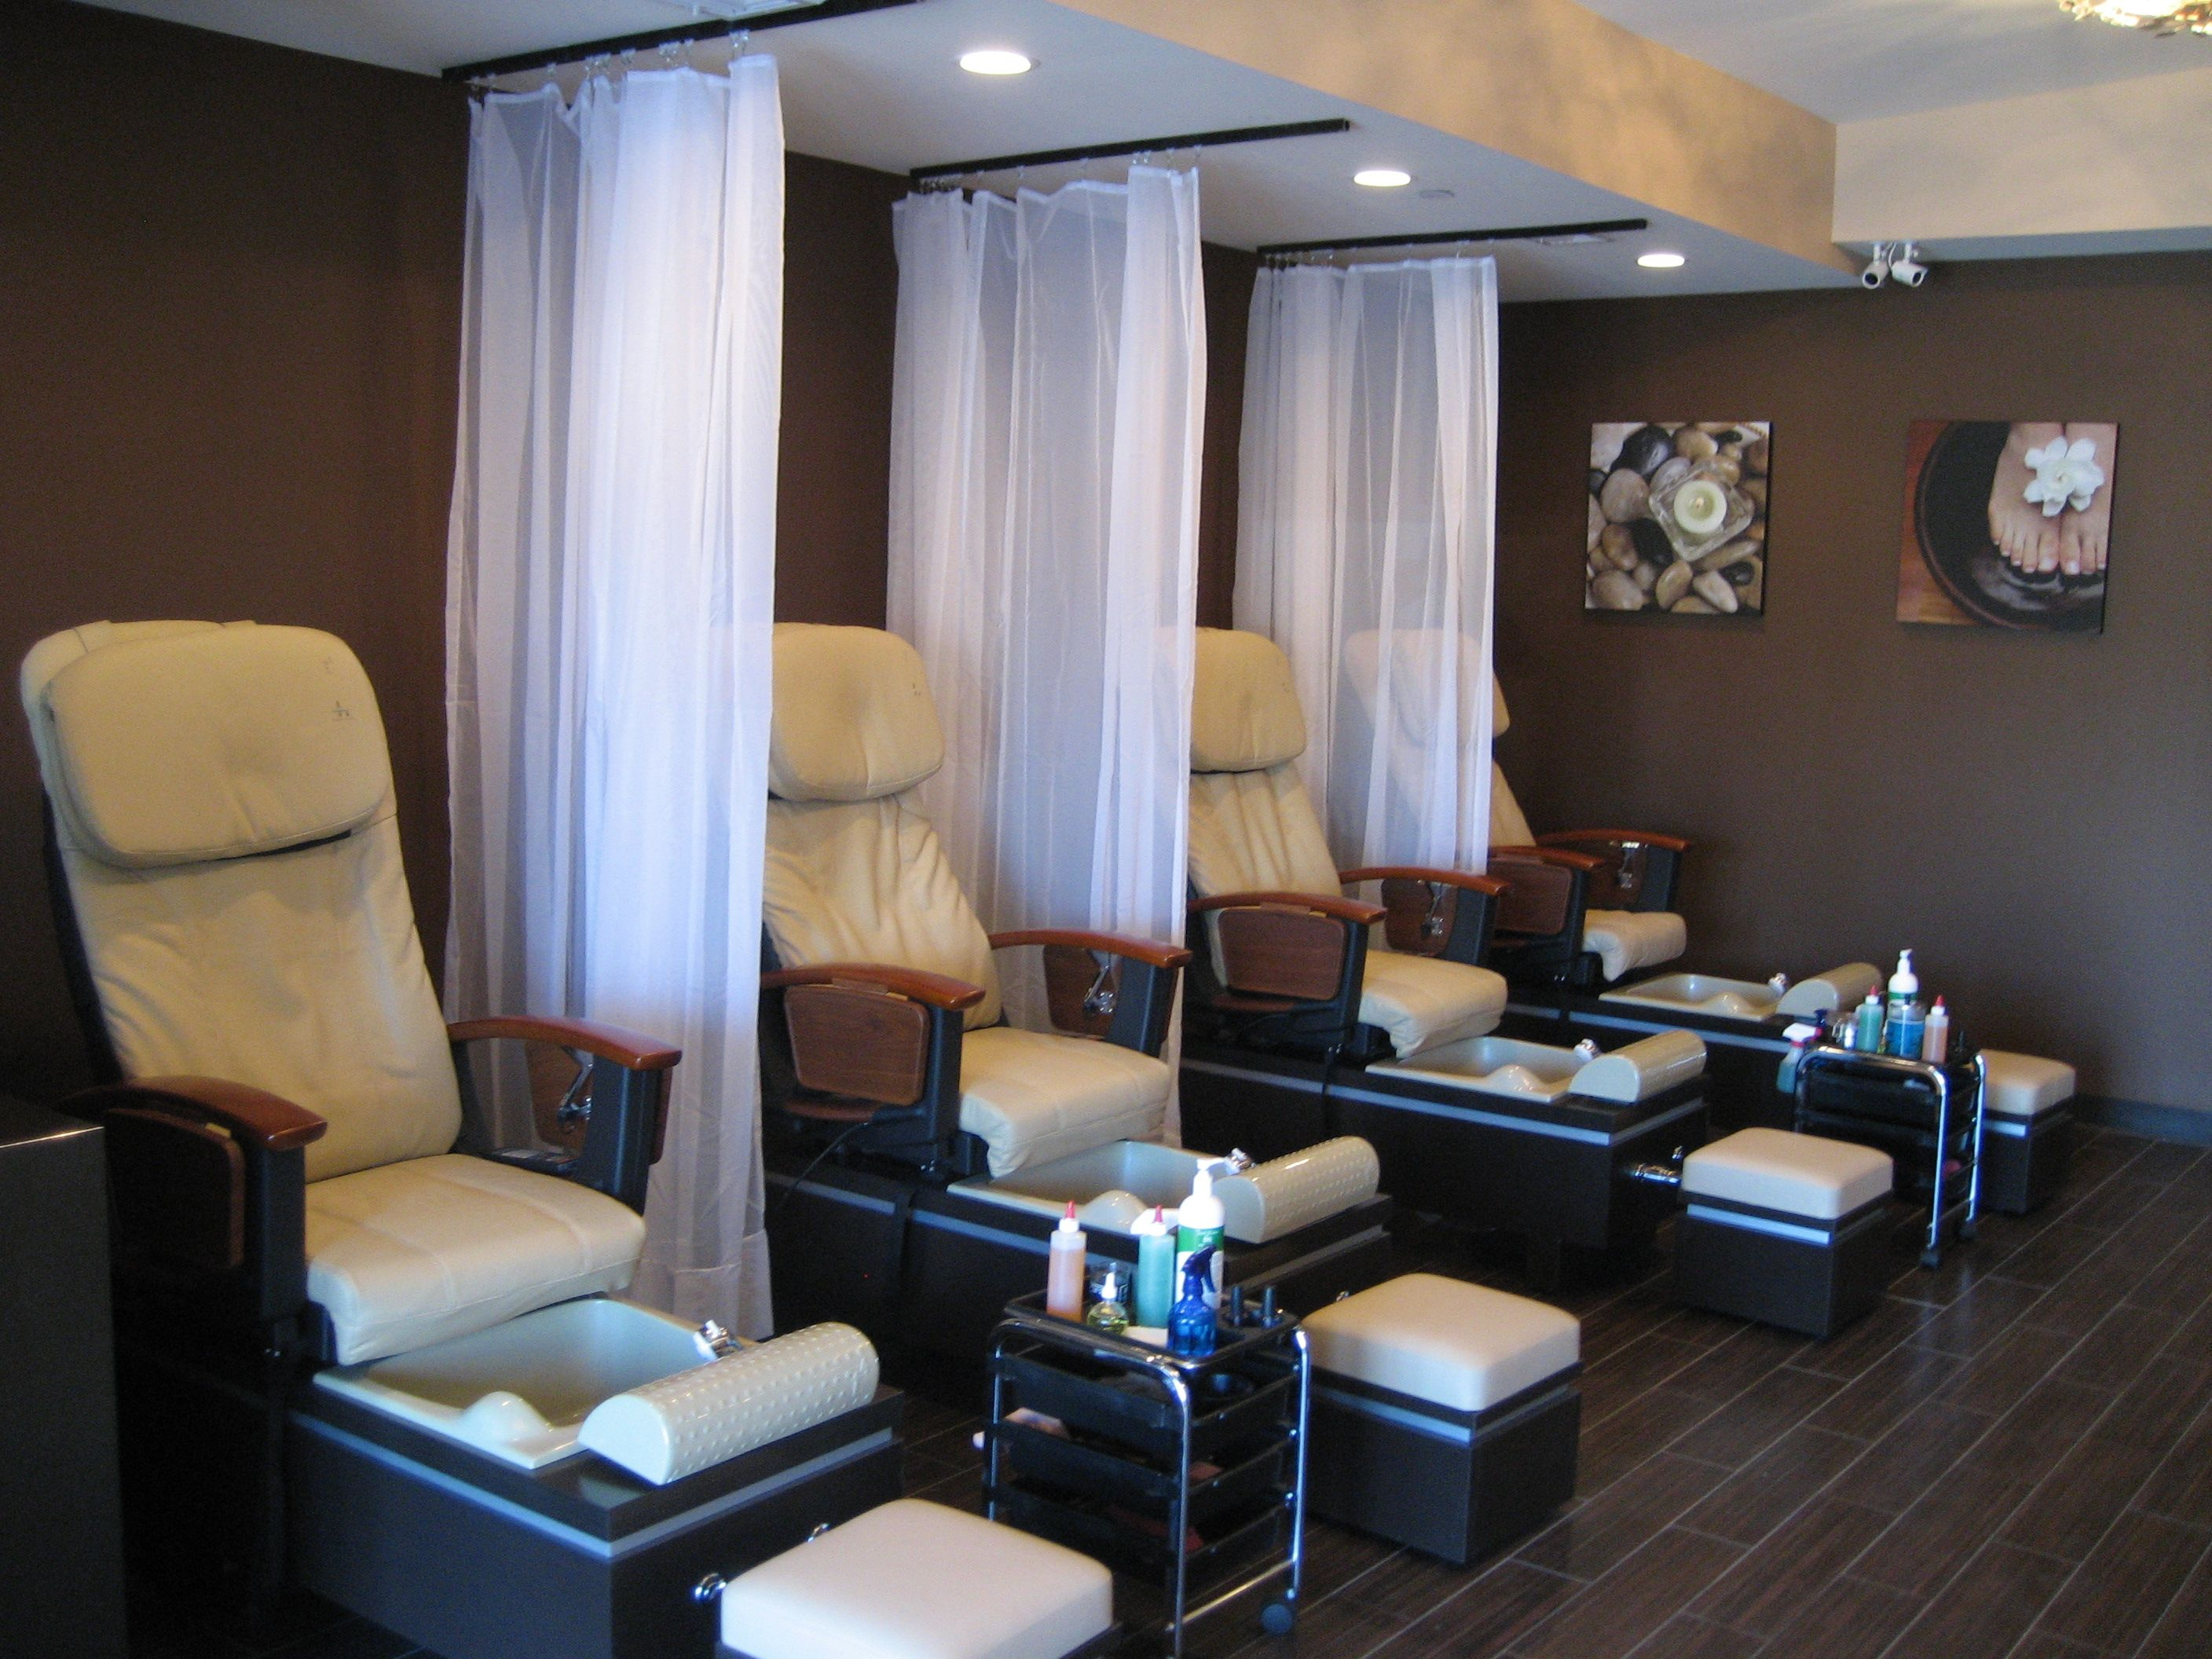 Beauty Salon Image Result For Small Nail Salon Interior Designs Salon